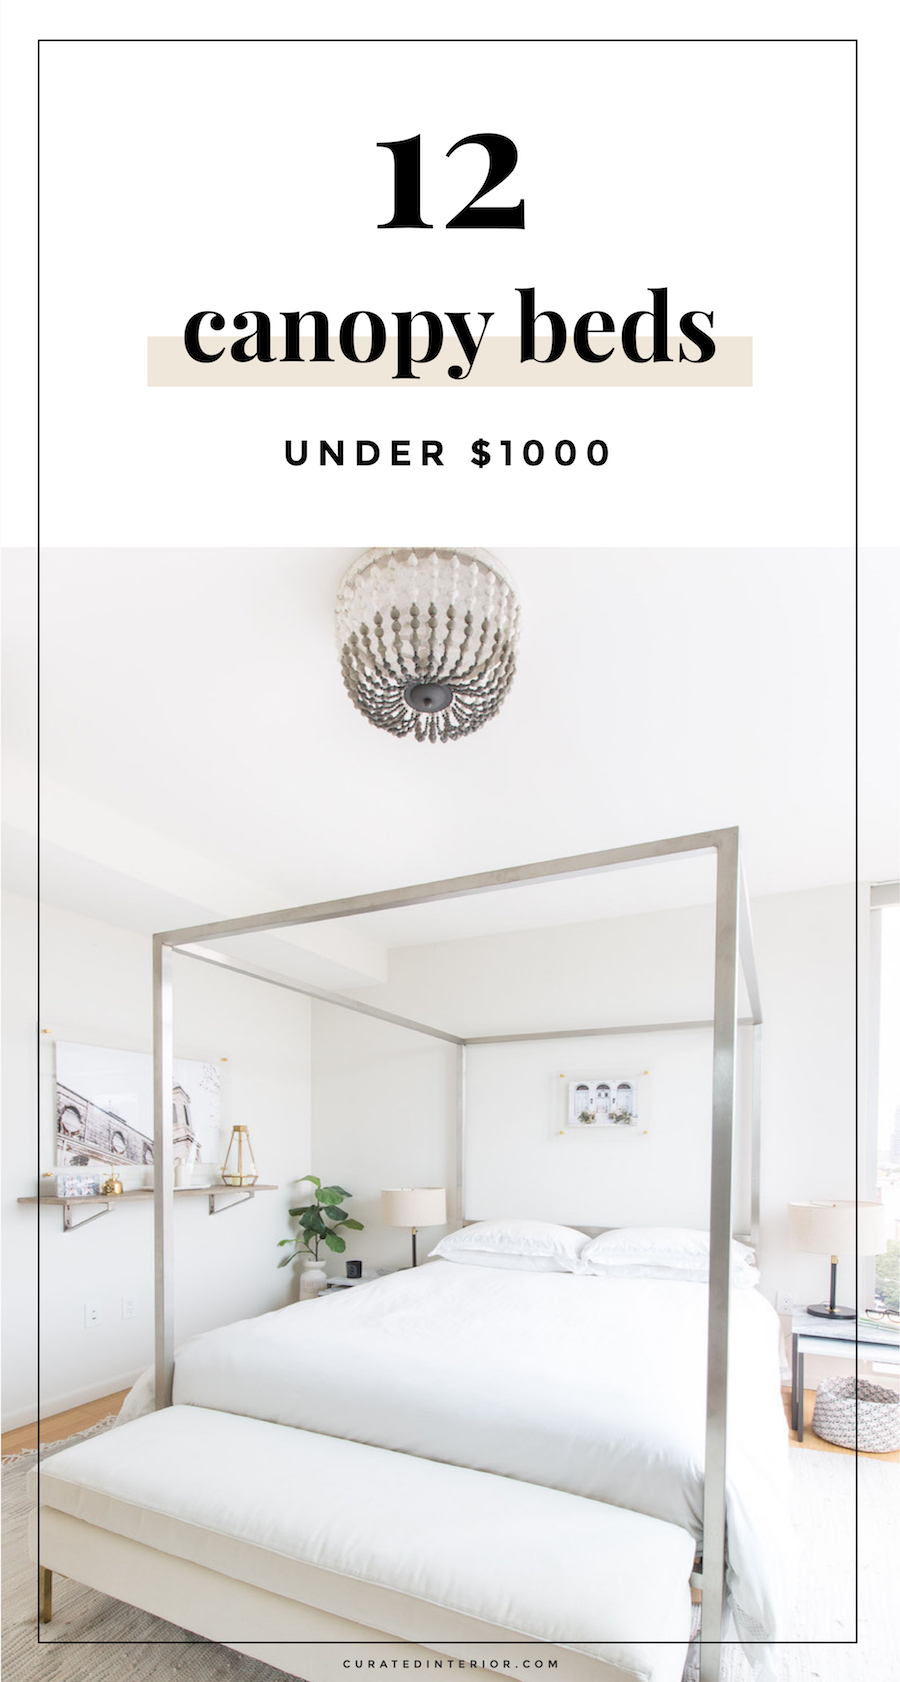 Affordable Canopy Beds Under $1000